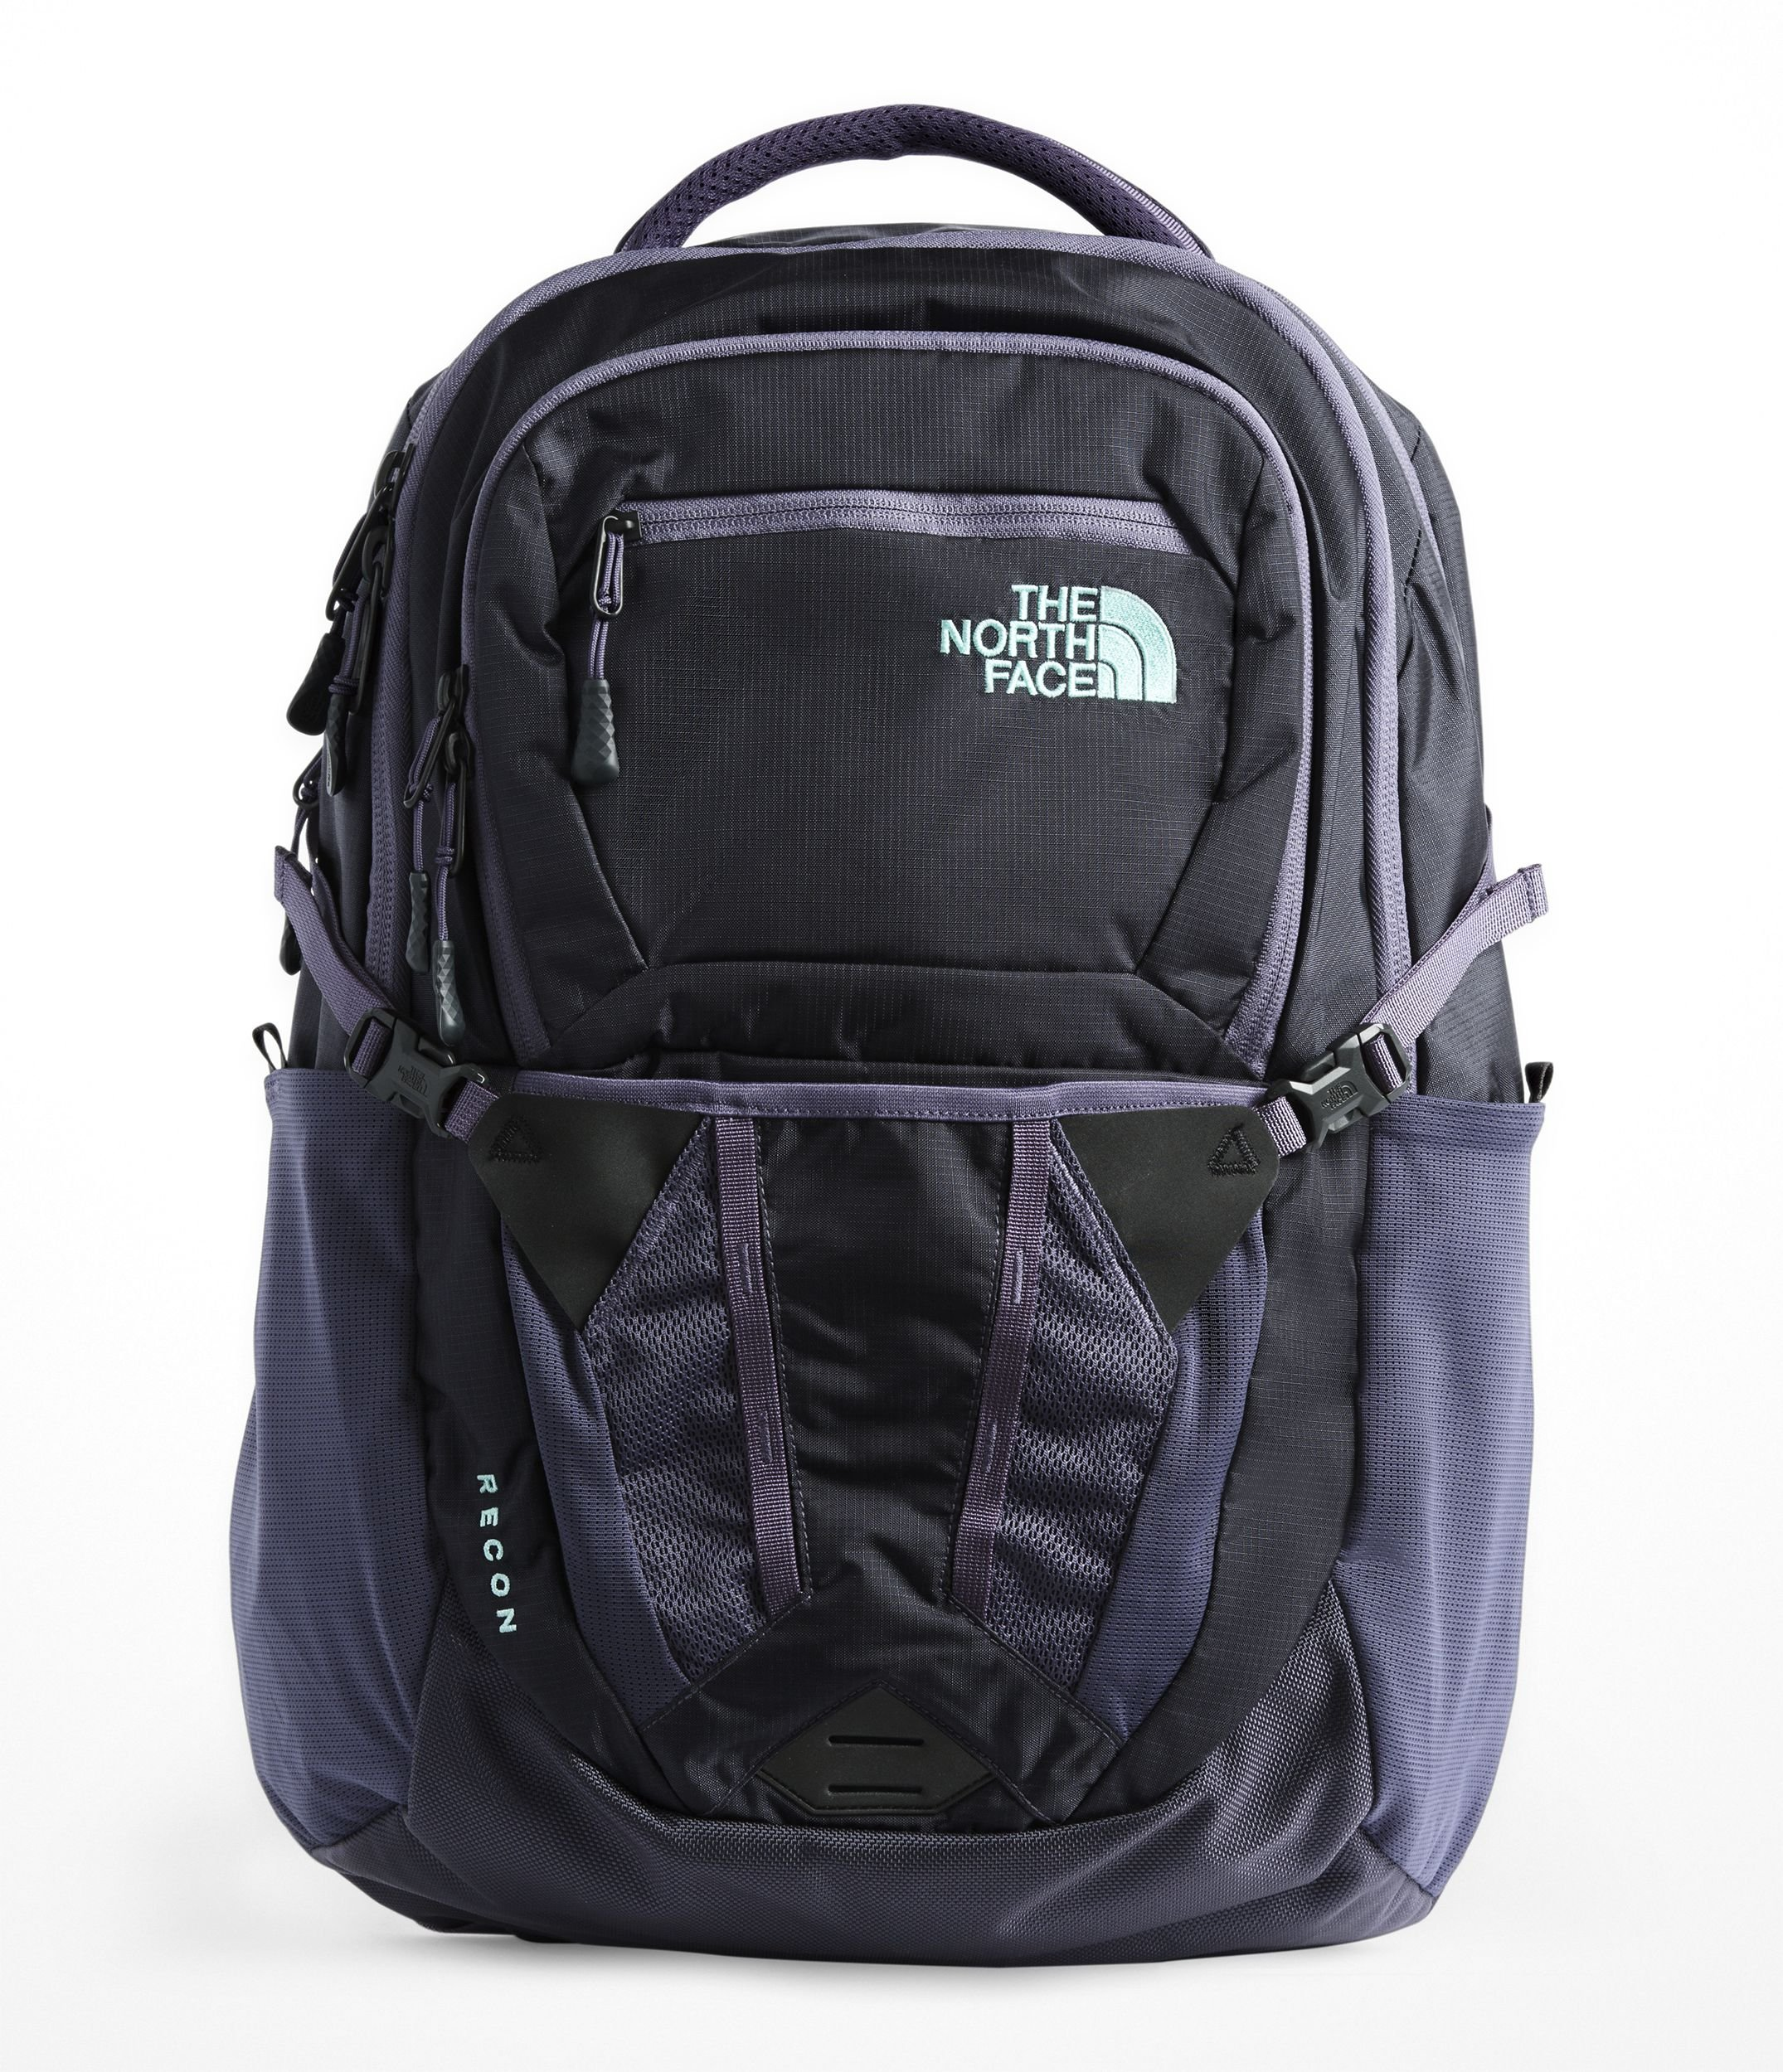 The North Face Women's Recon Laptop Backpack (Greystone Blue Ripstop/Mint Blue)